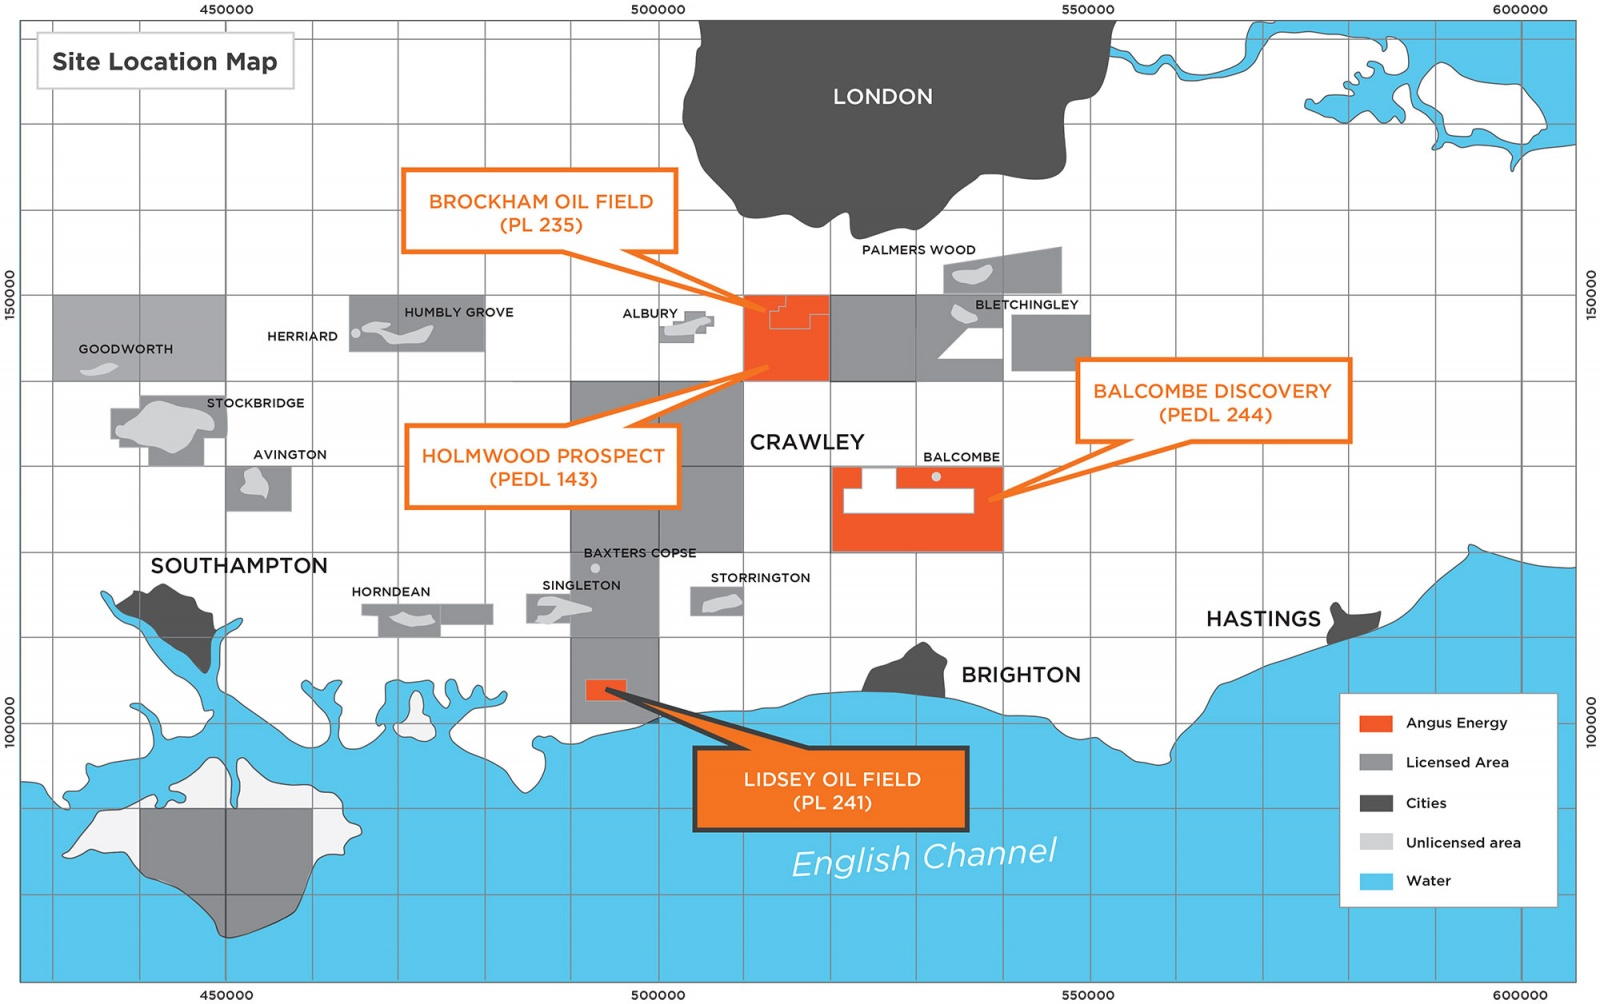 Map Of Uk Oil Fields.Lidsey Oil Field Angus Energy Plc